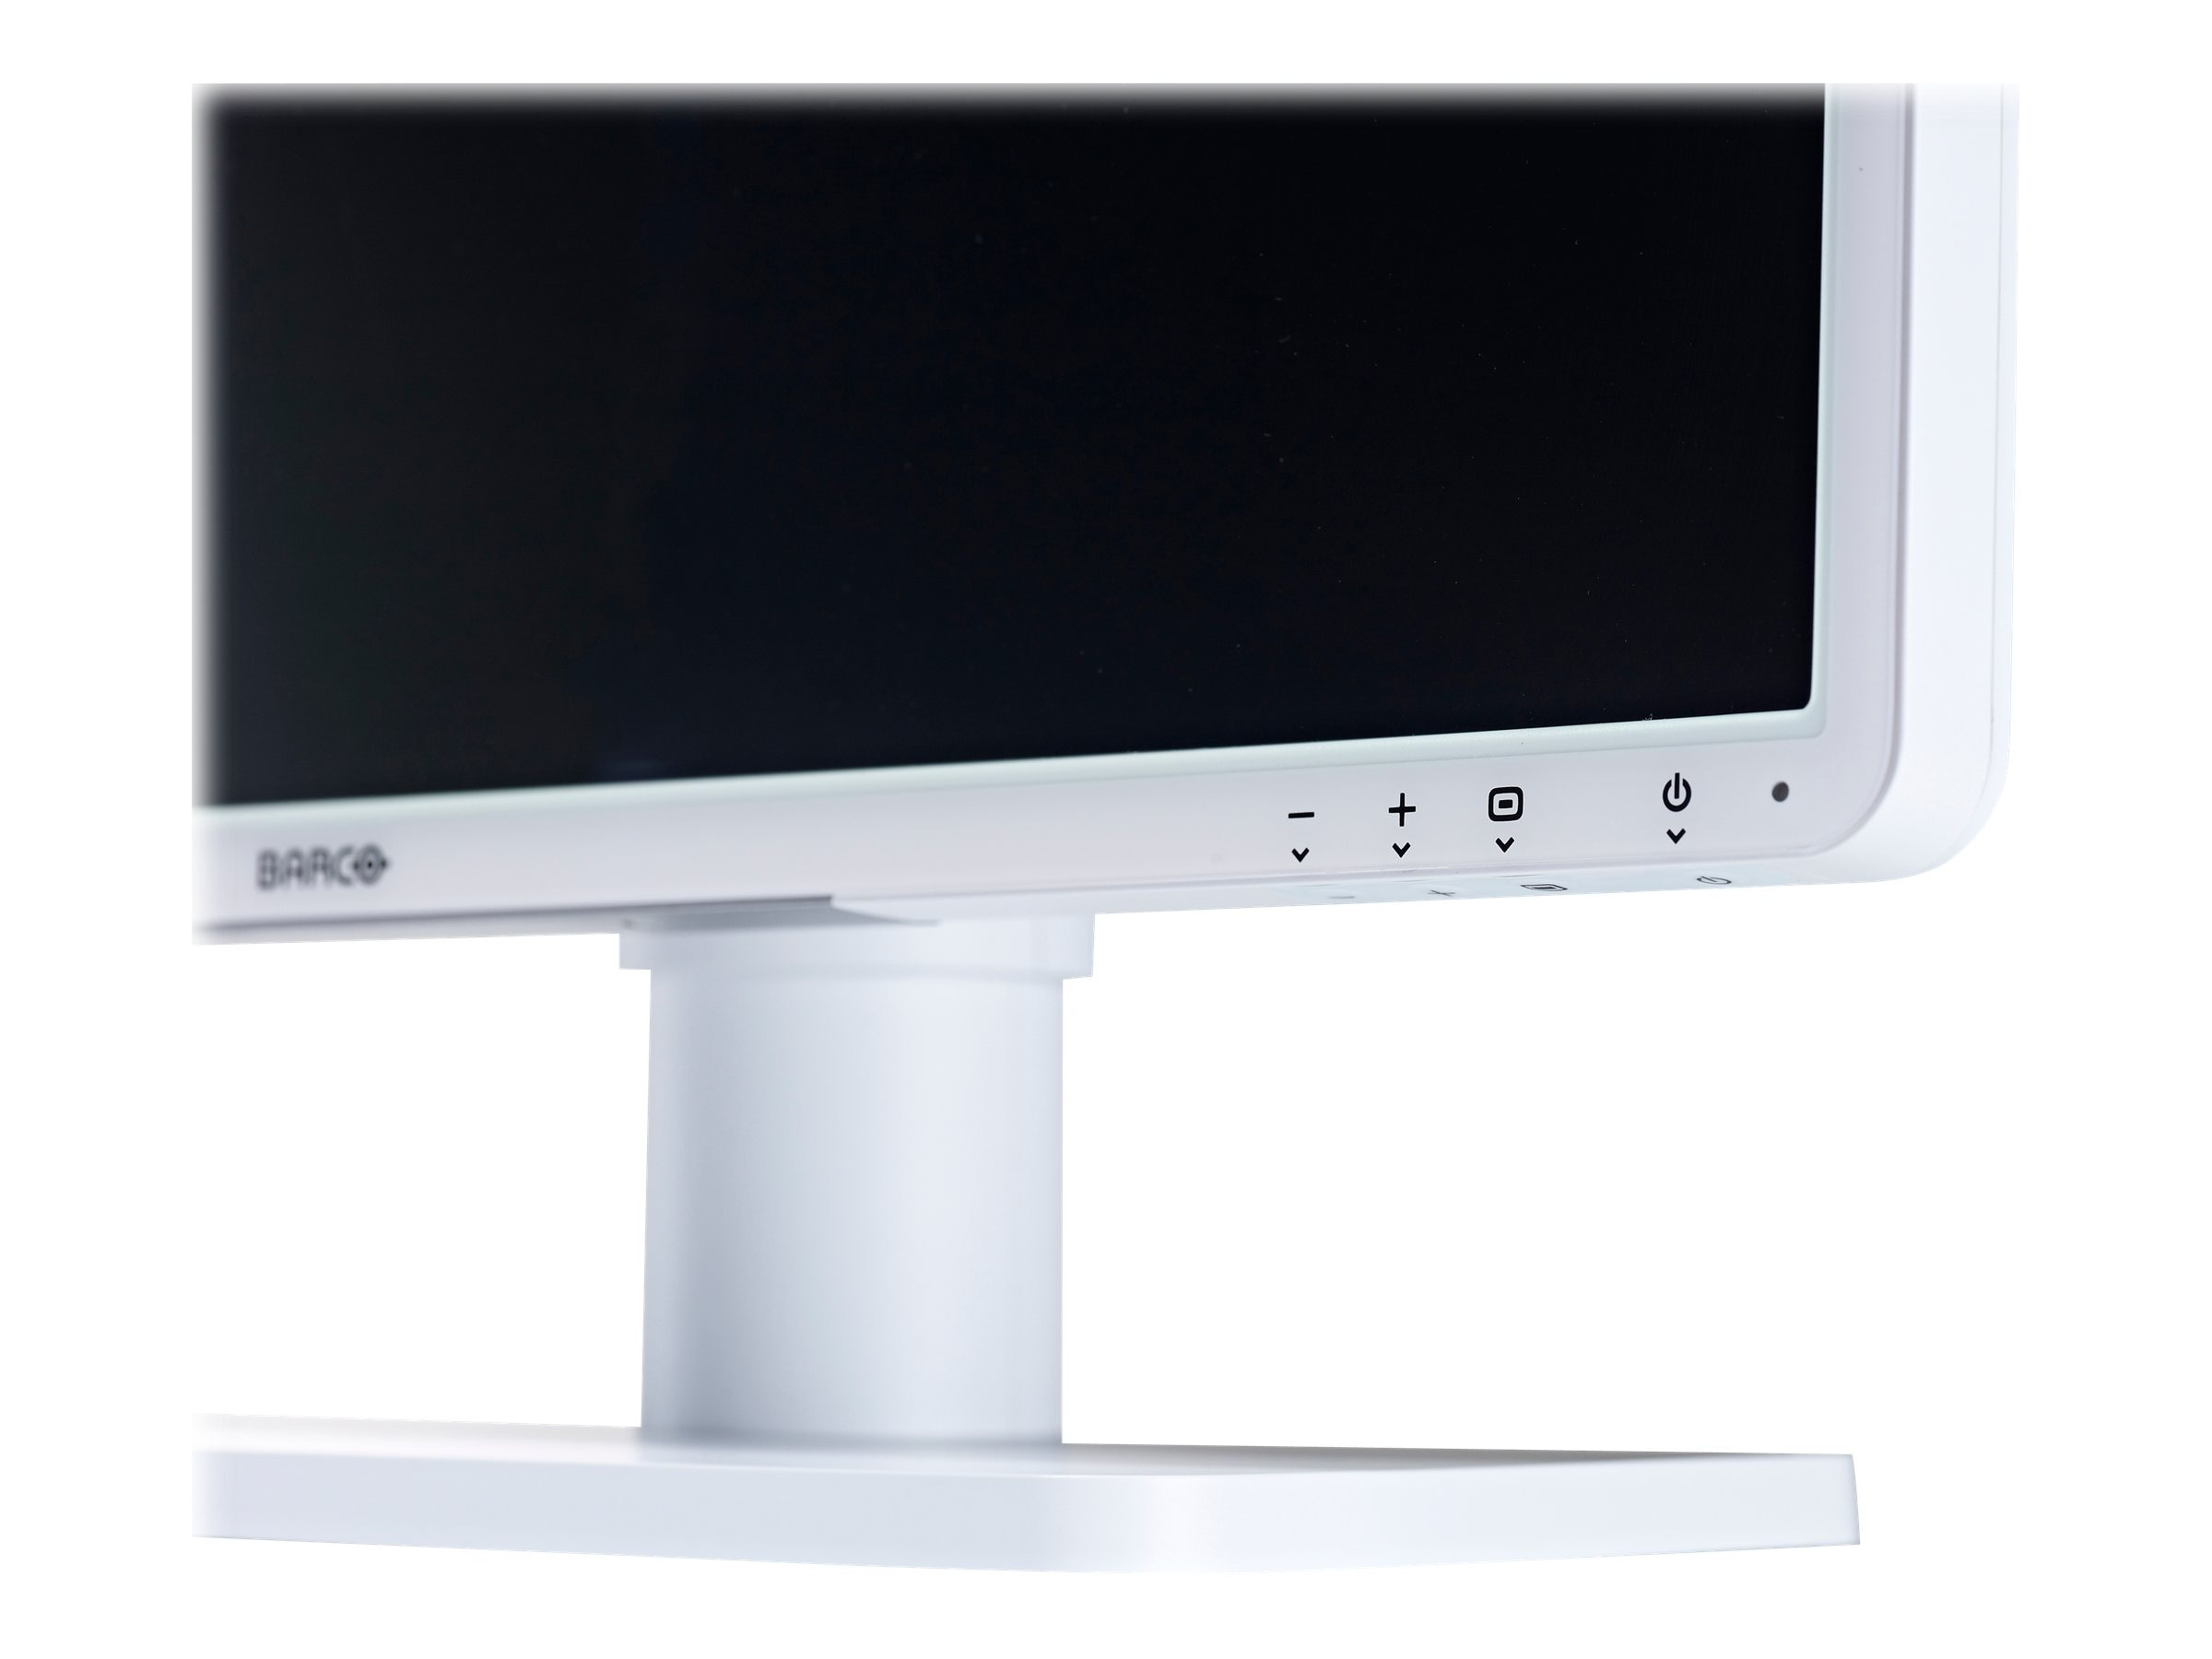 Barco 21.5 Eonis 2MP Full HD LED-LCD Monitor, White, K9301851A